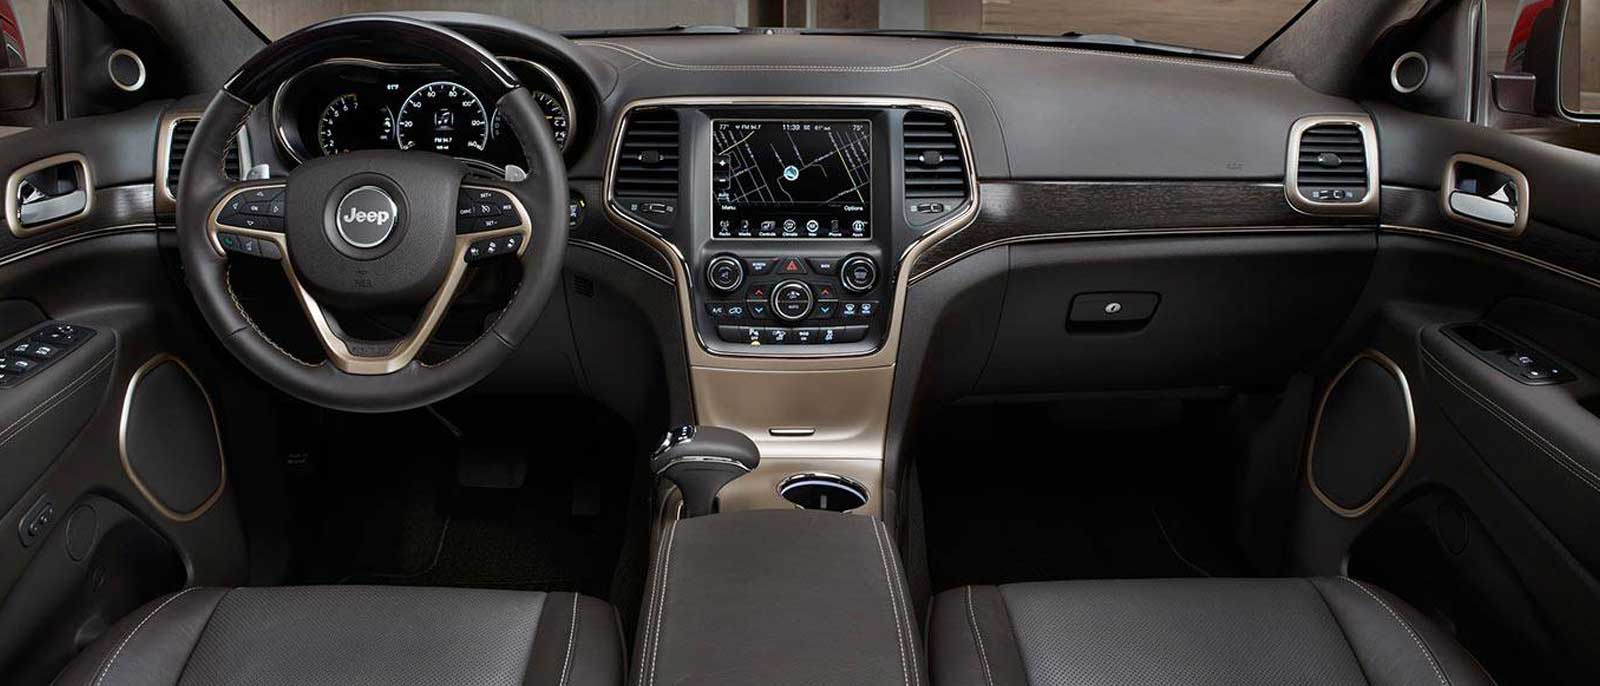 2015 Jeep Grand Cherokee Interior ...